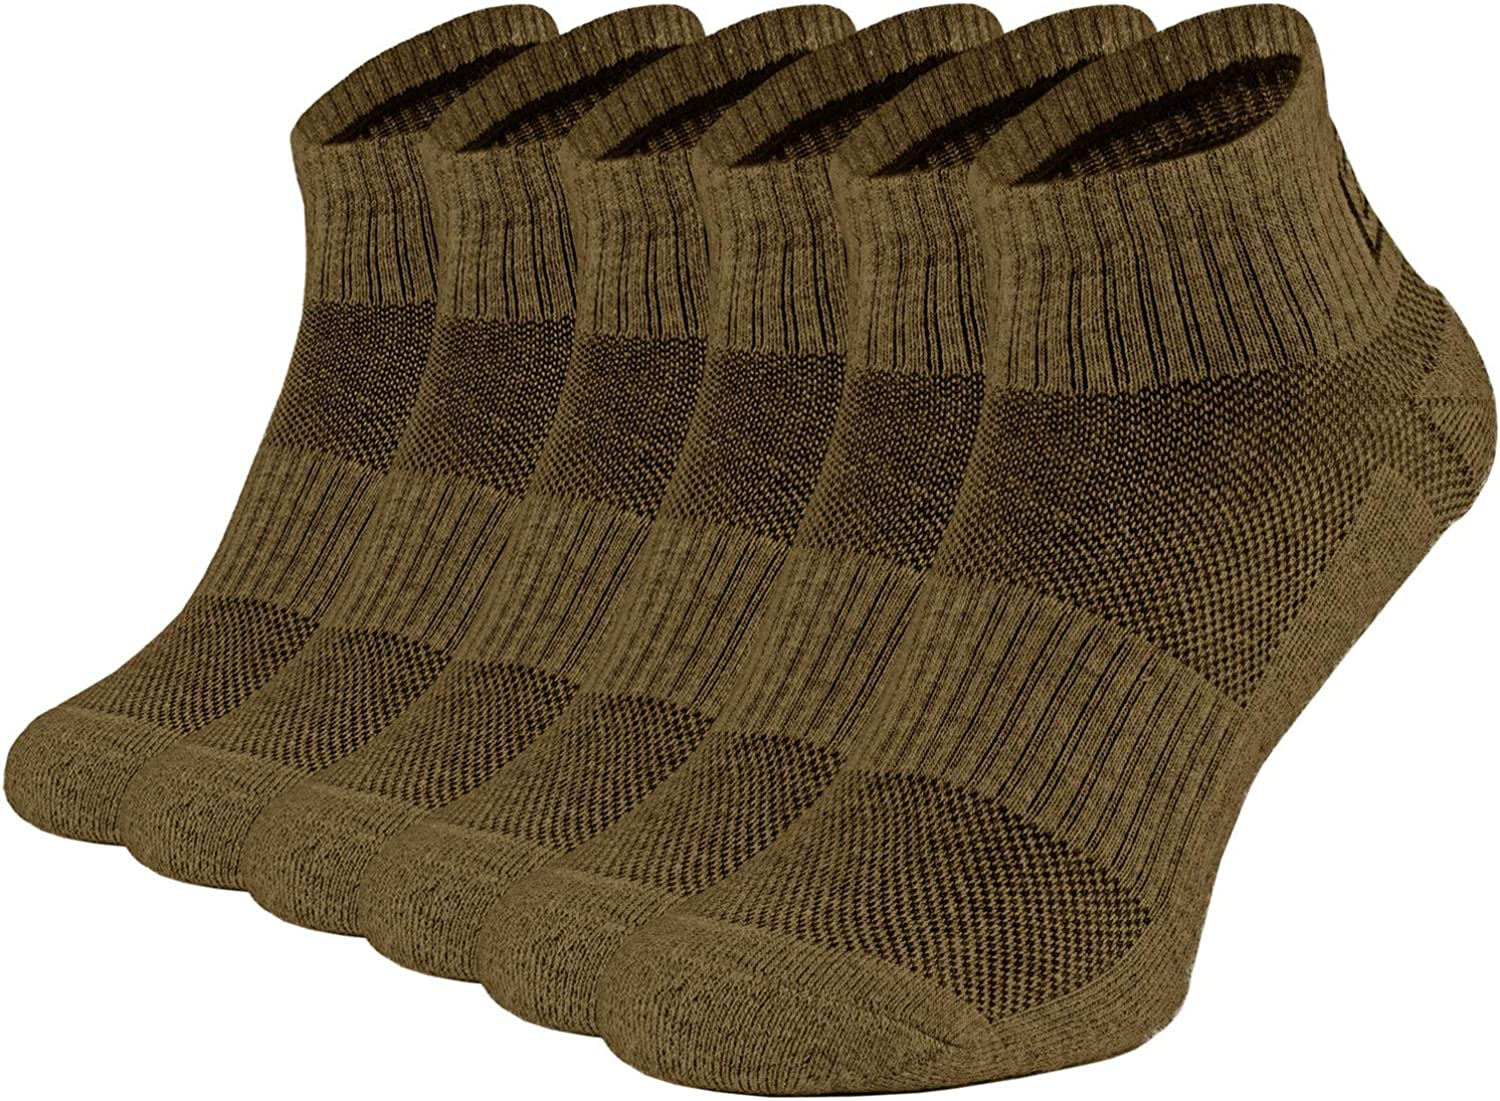 281Z Running Cushion Ankle Low Cut Socks - Athletic Hiking Sport Workout (Coyote Brown)